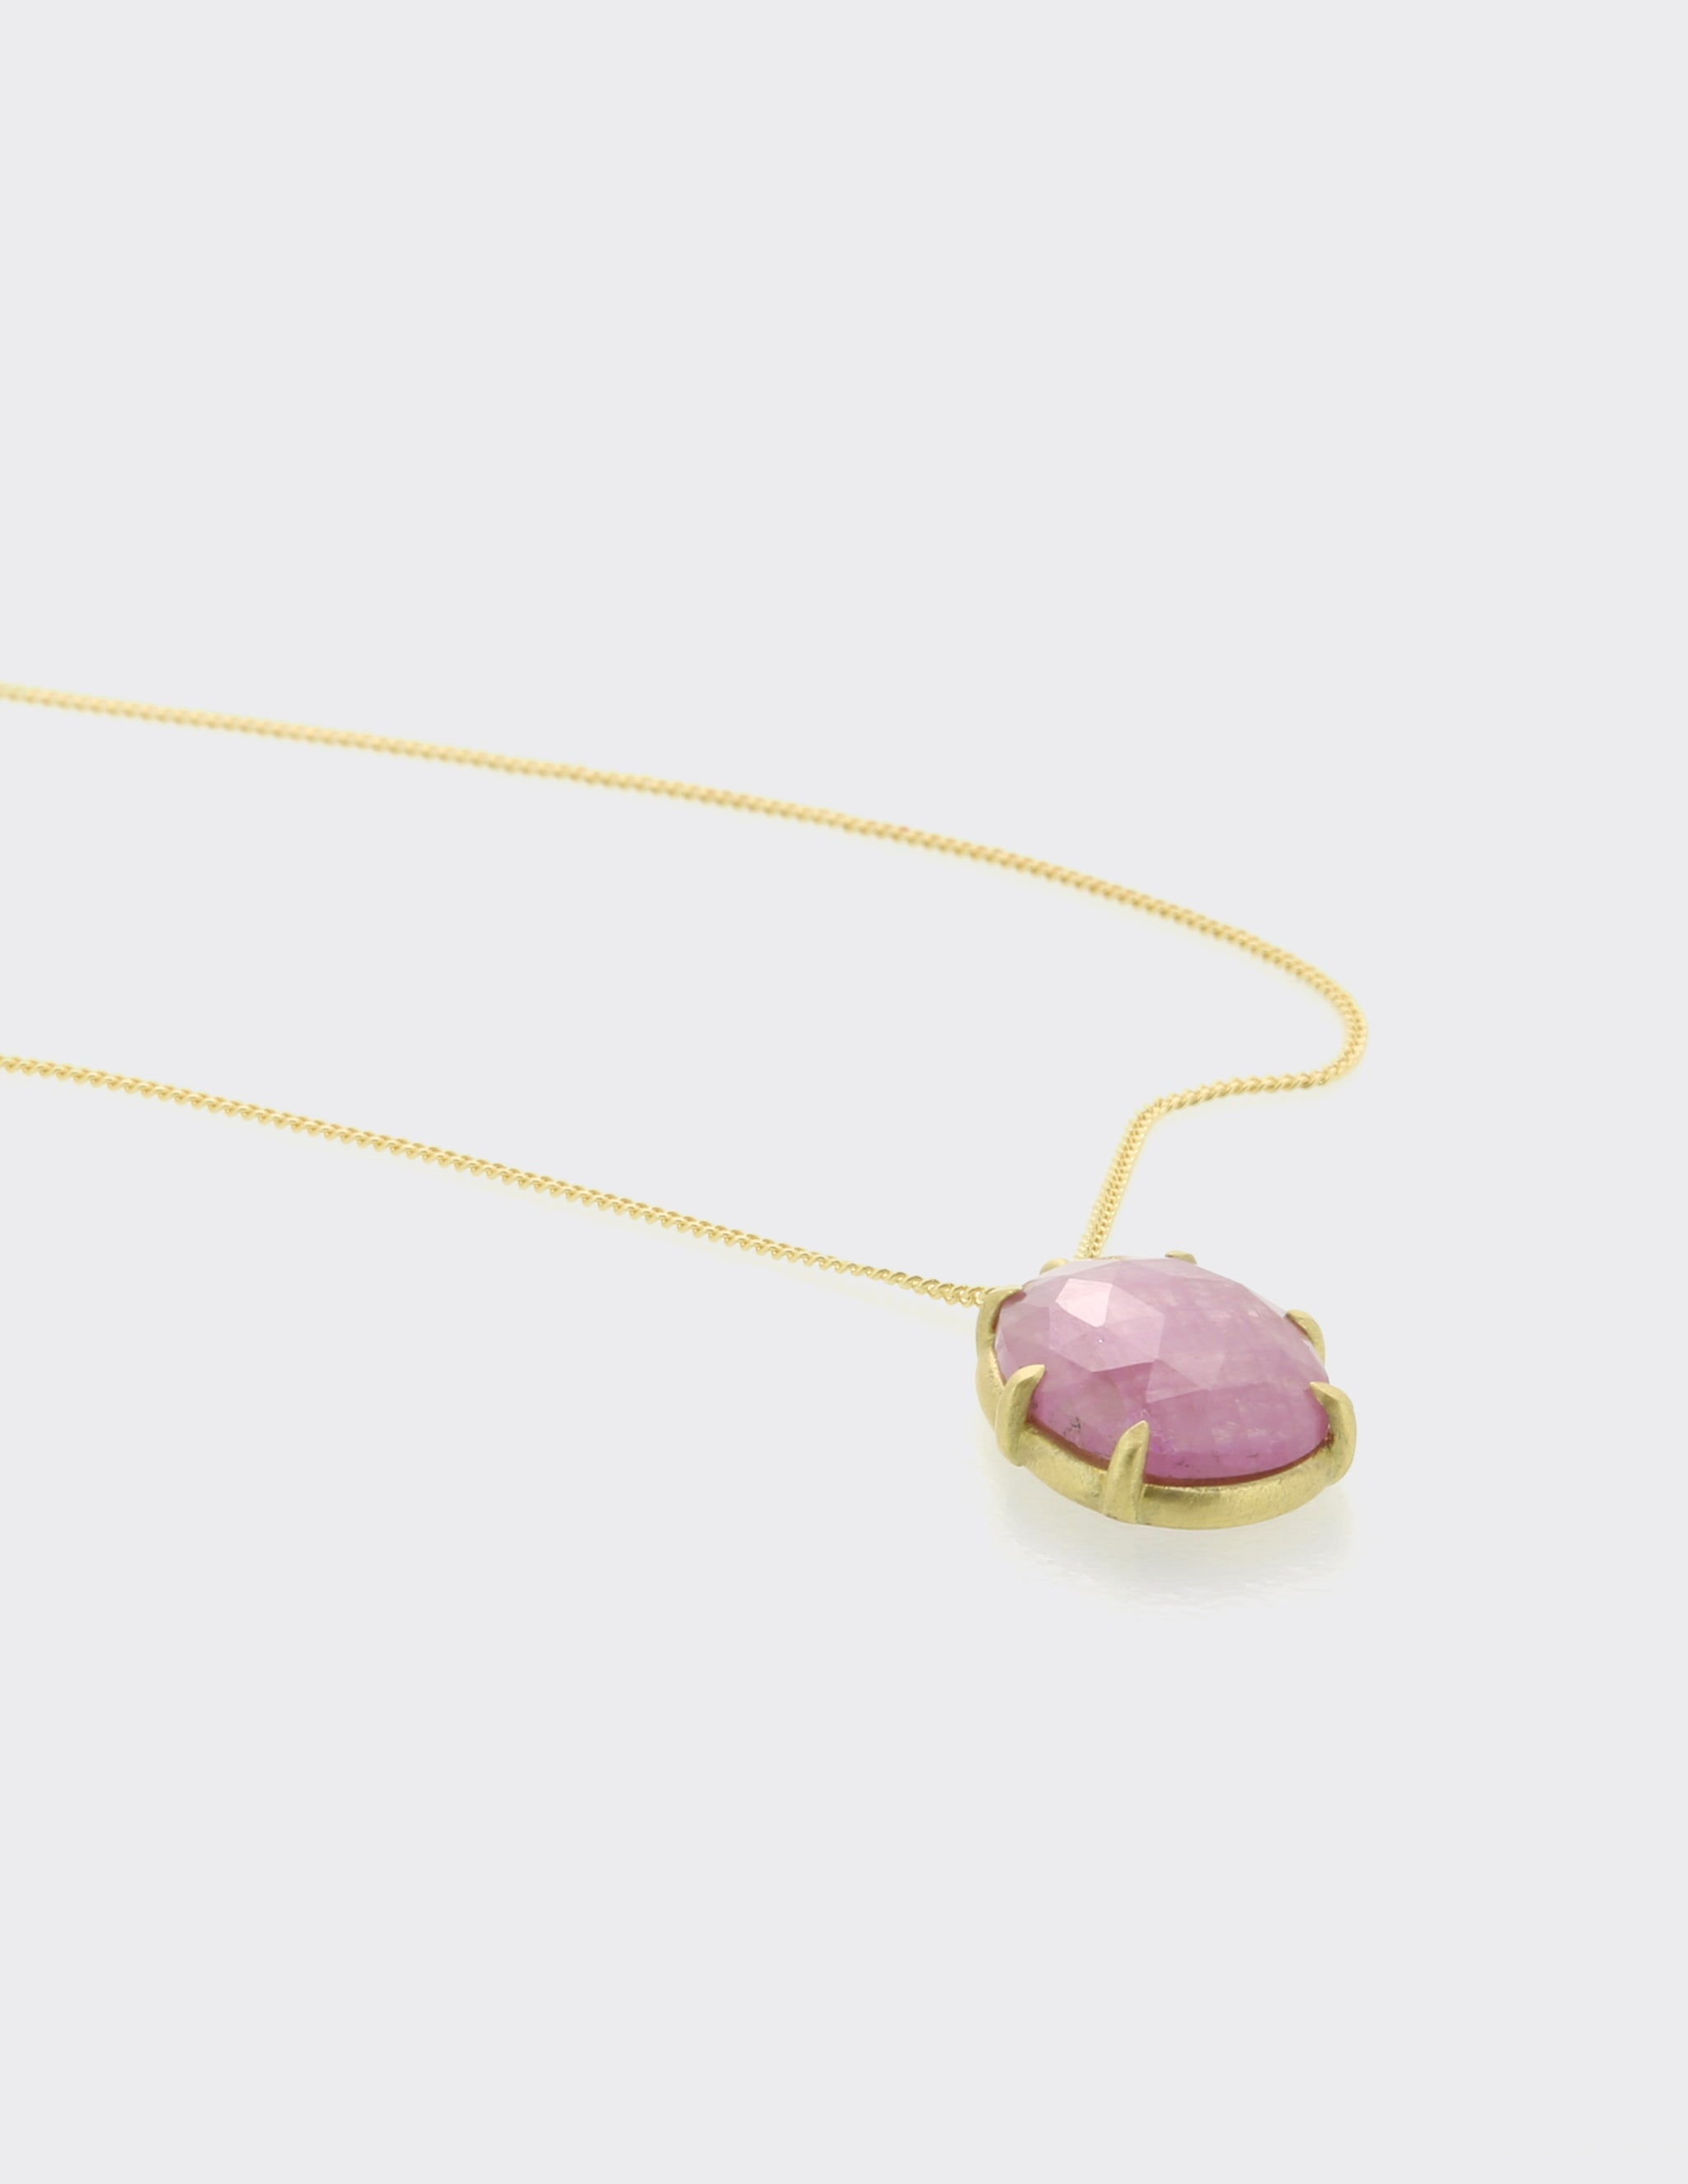 Pink sapphire pendant on chain